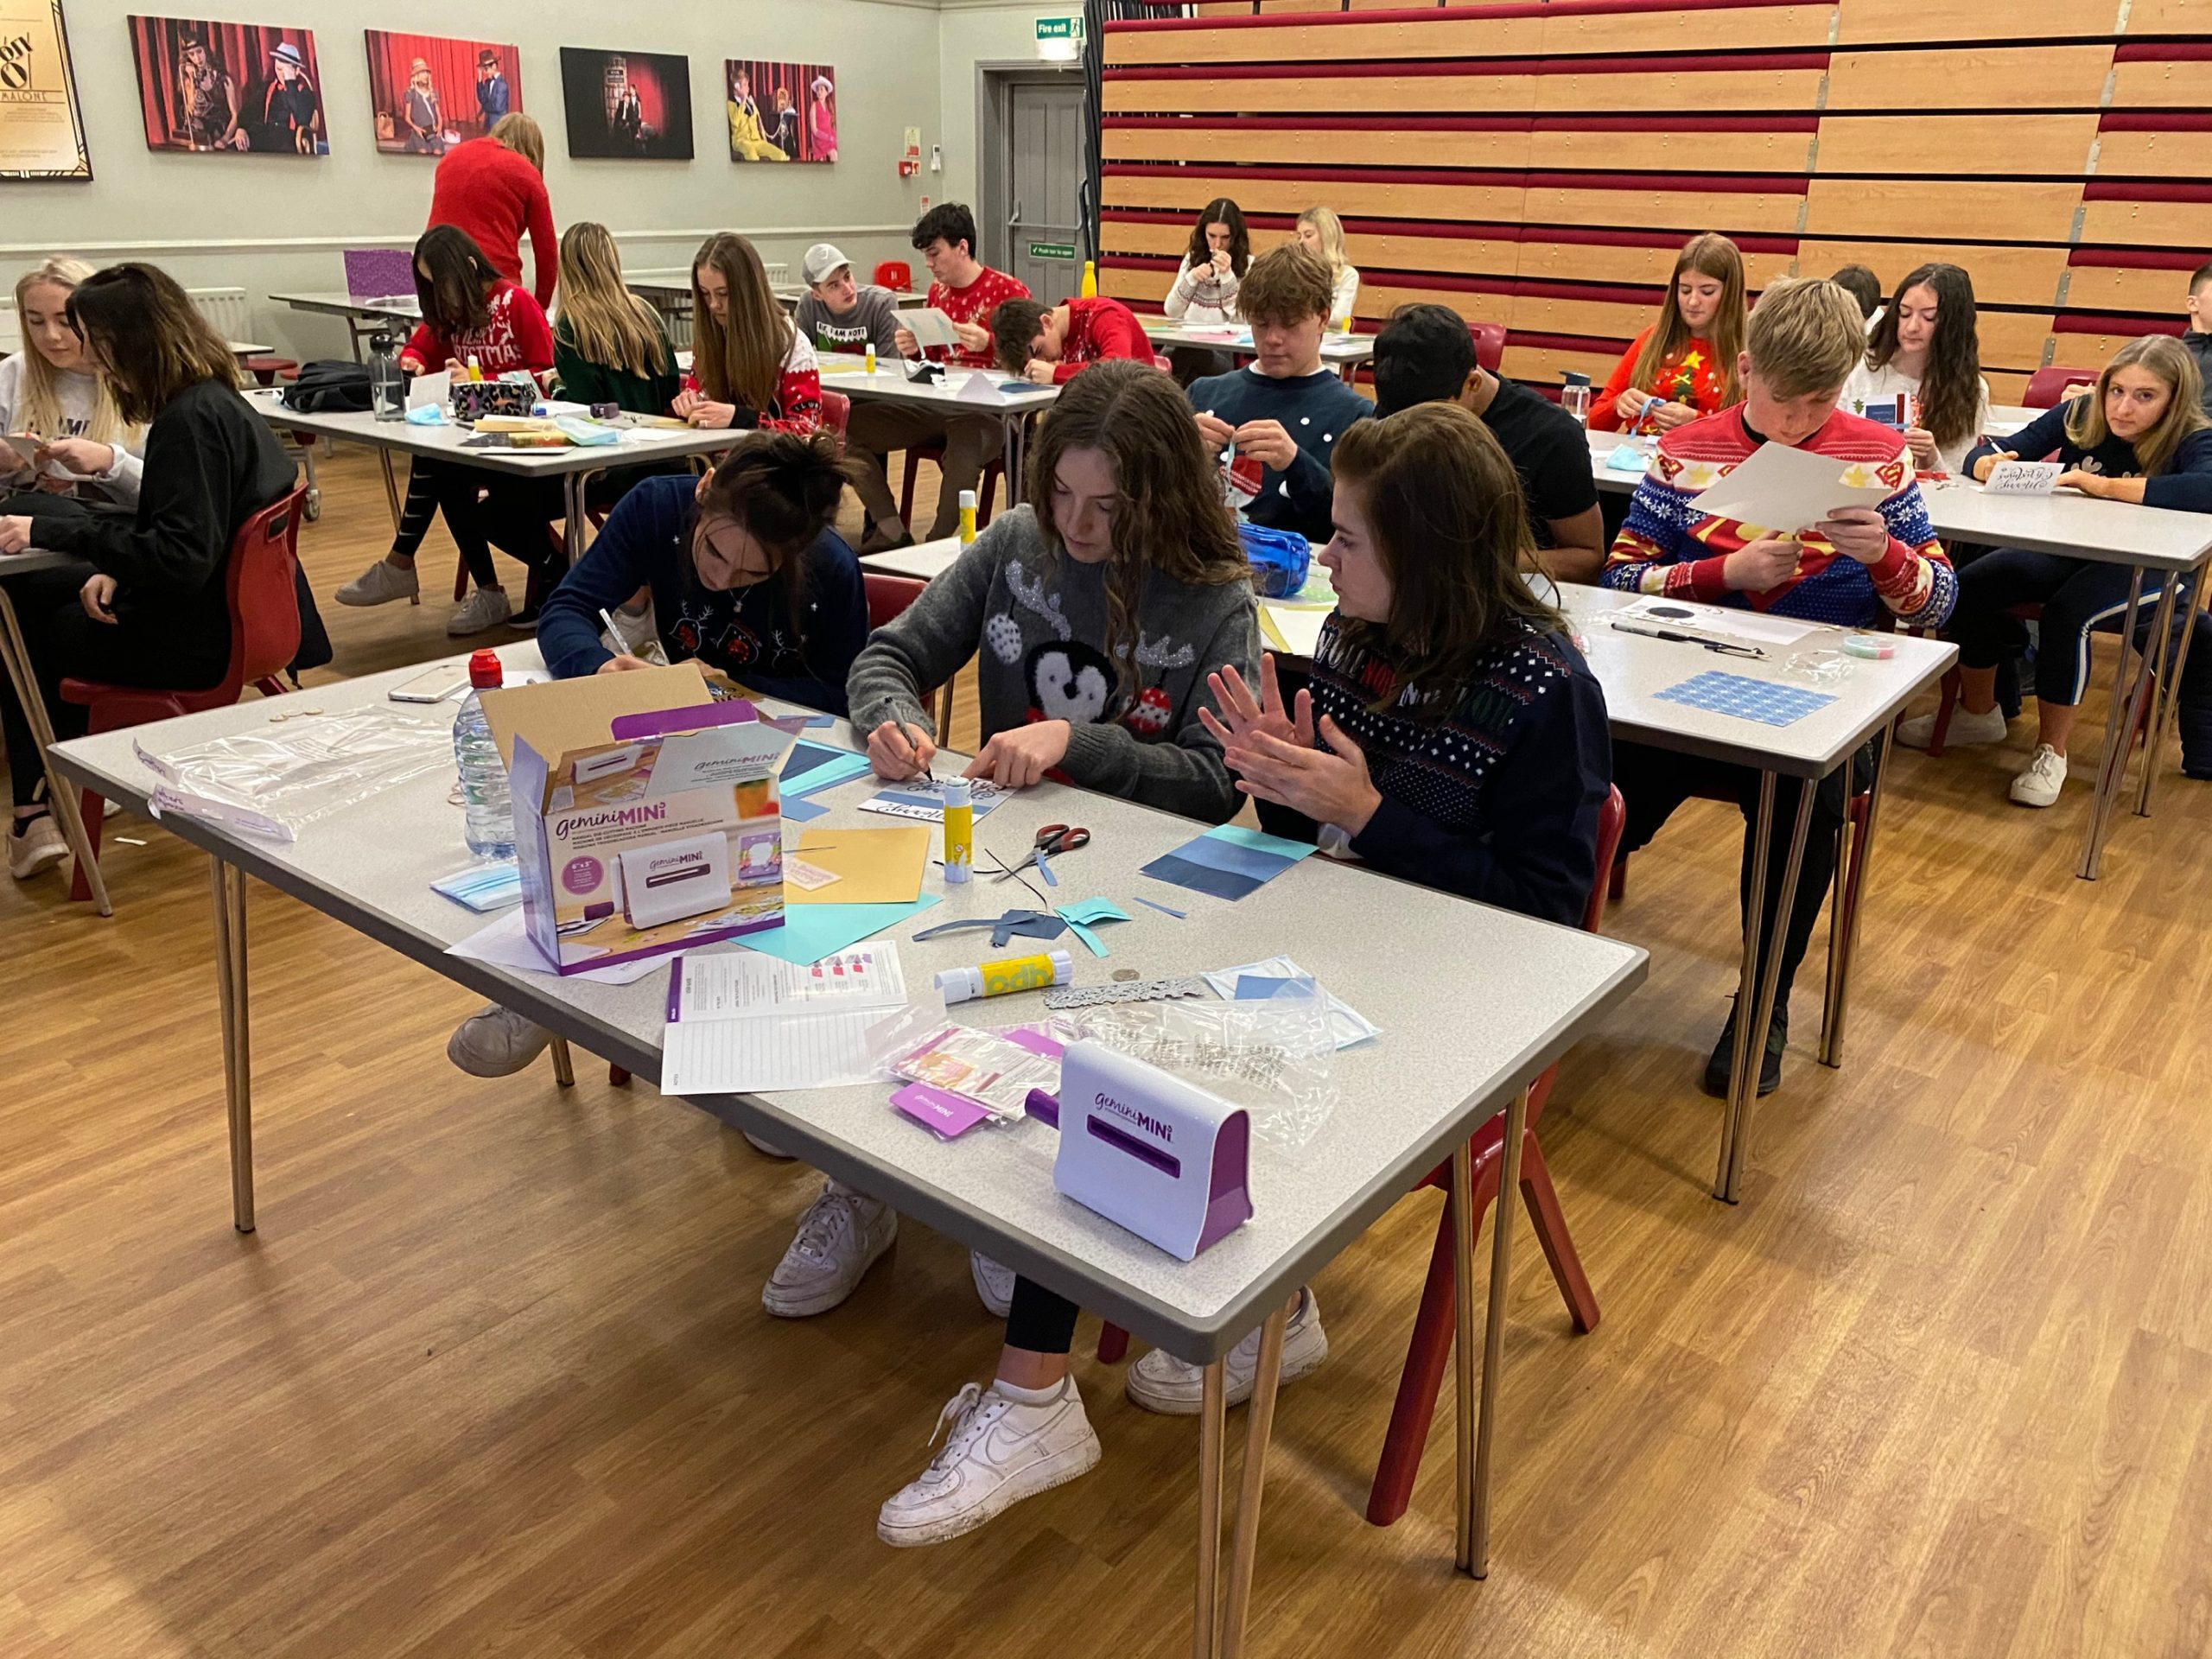 Red House Senior School pupils sit around tables making Christmas crafts.